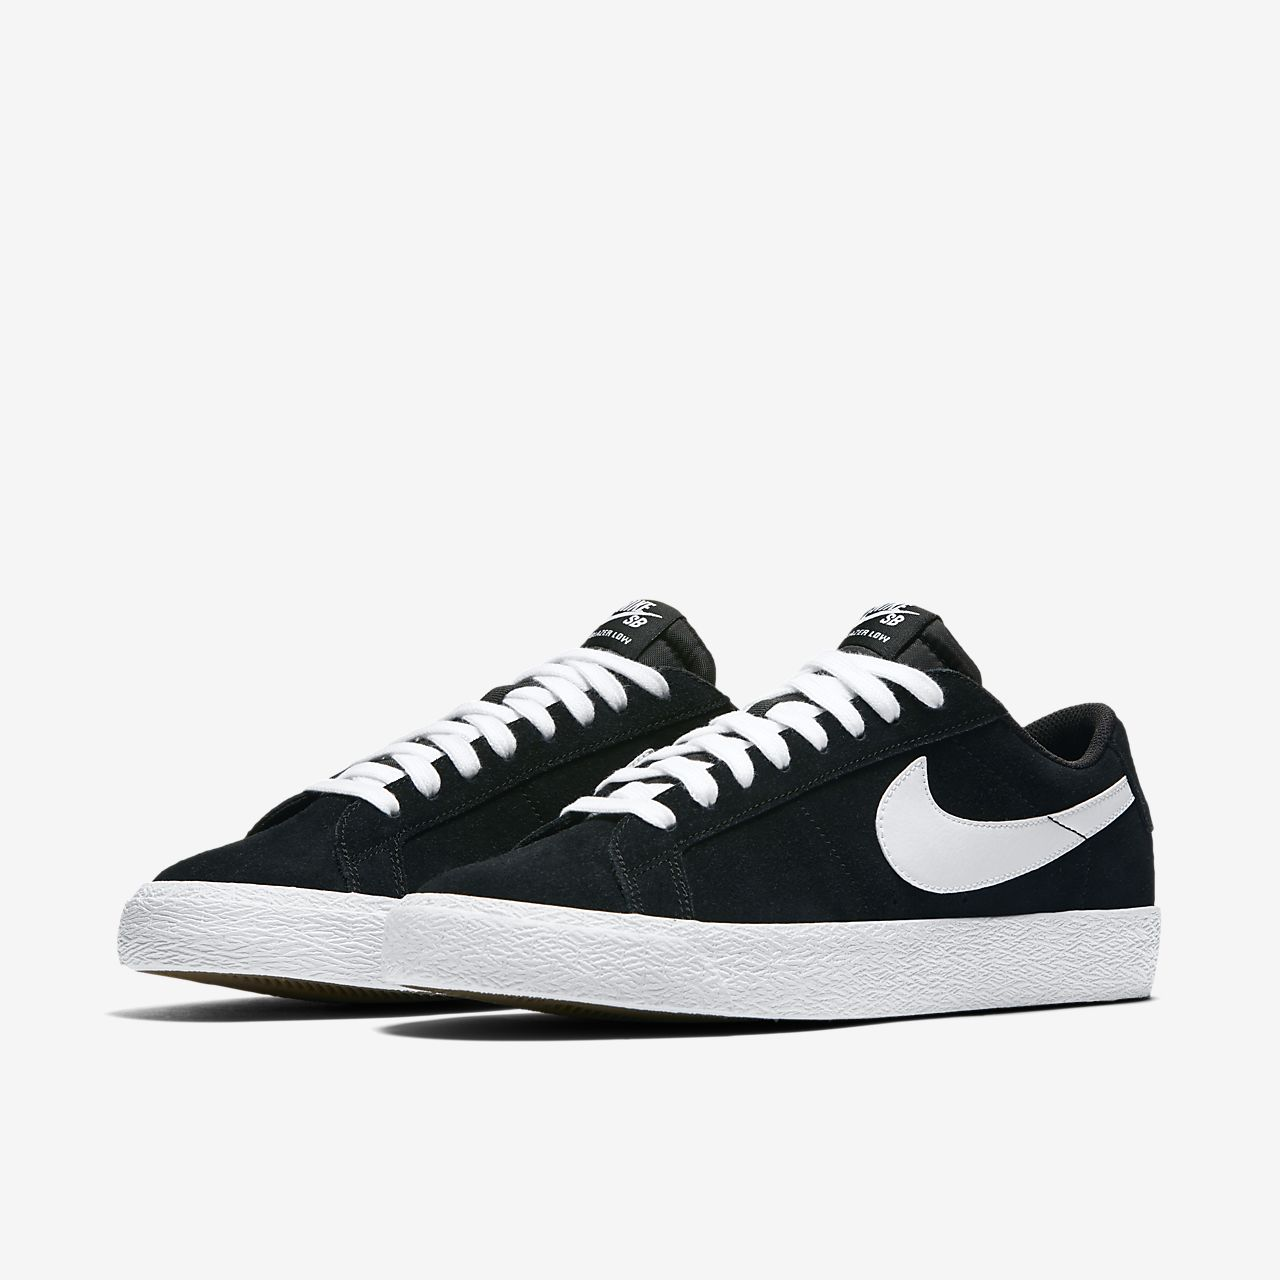 b085a30e8794 Nike SB Blazer Zoom Low Men s Skateboarding Shoe. Nike.com GB